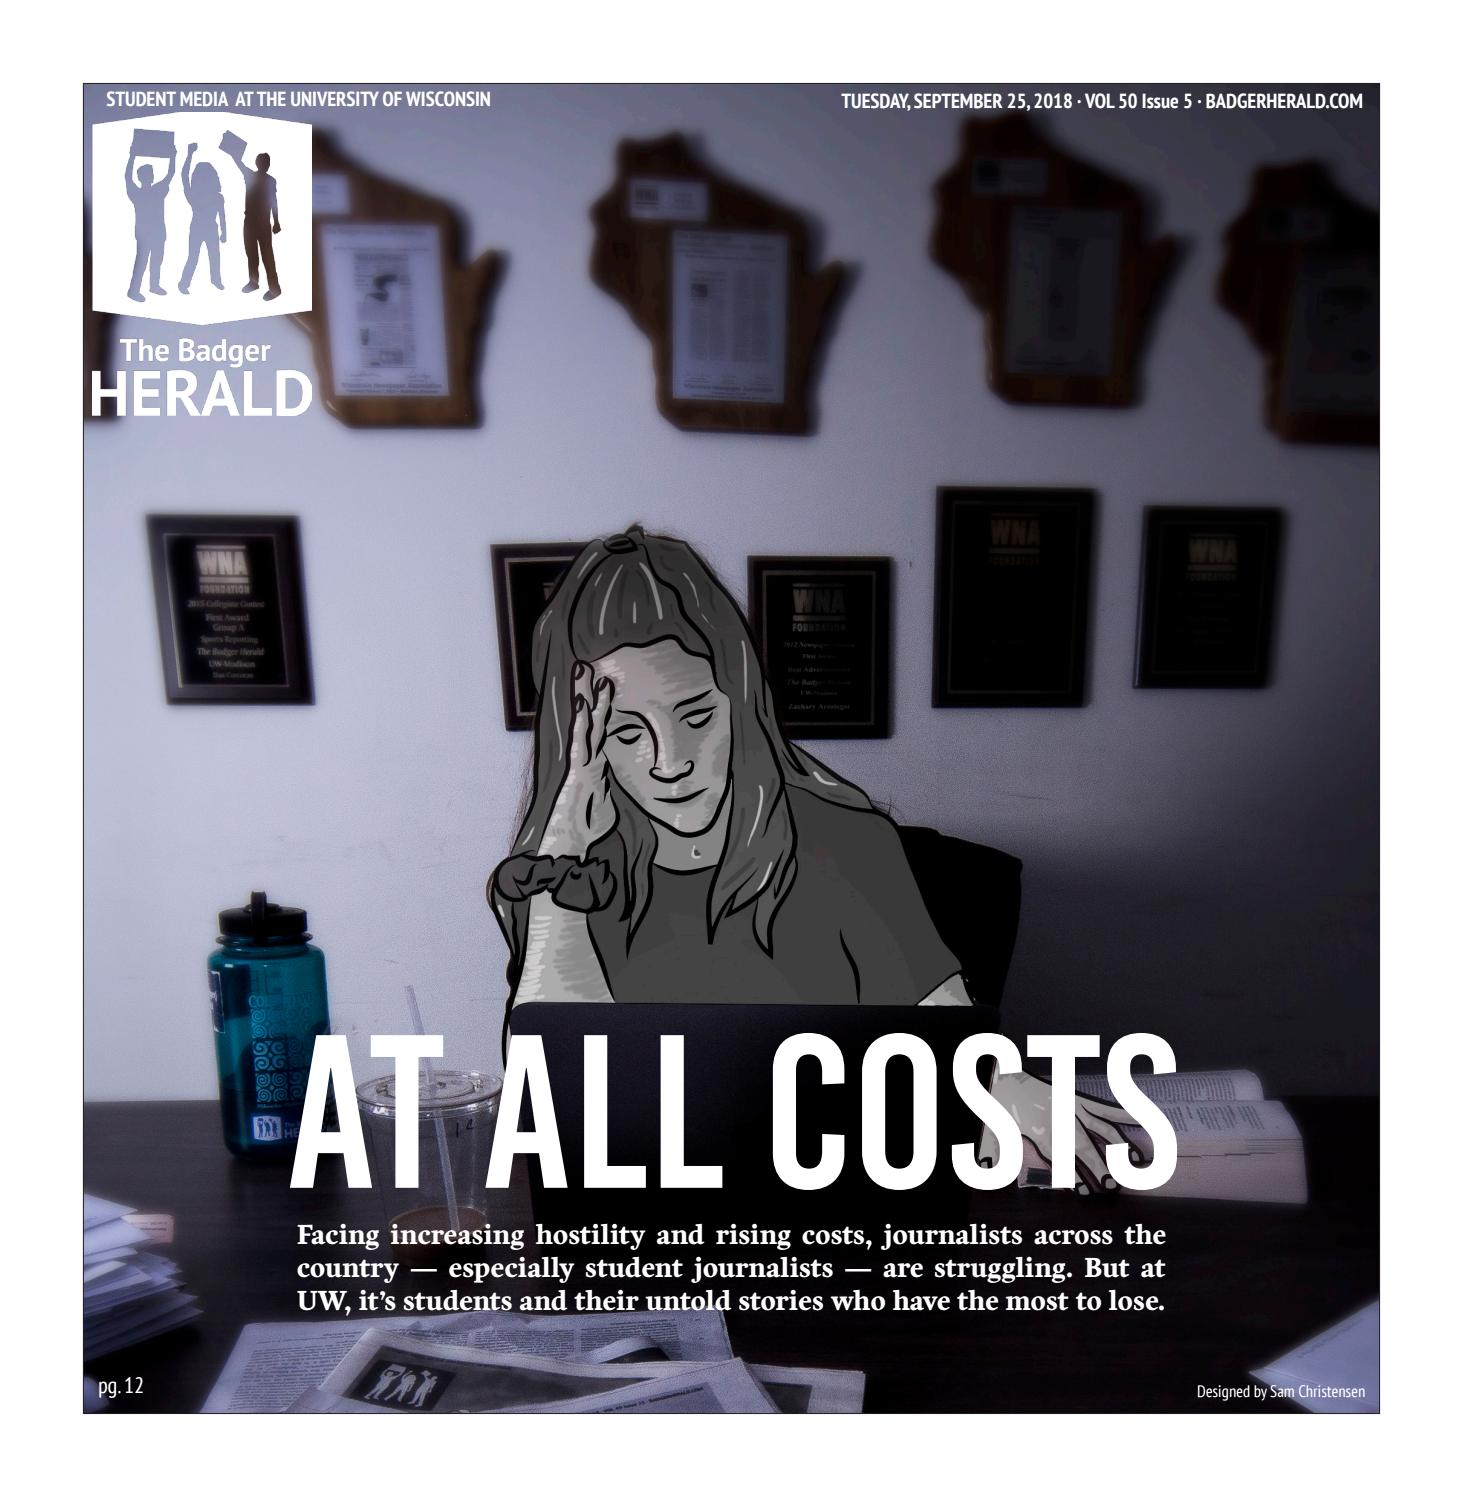 At All Costs' - Volume 50, Issue 5 by The Badger Herald - issuu